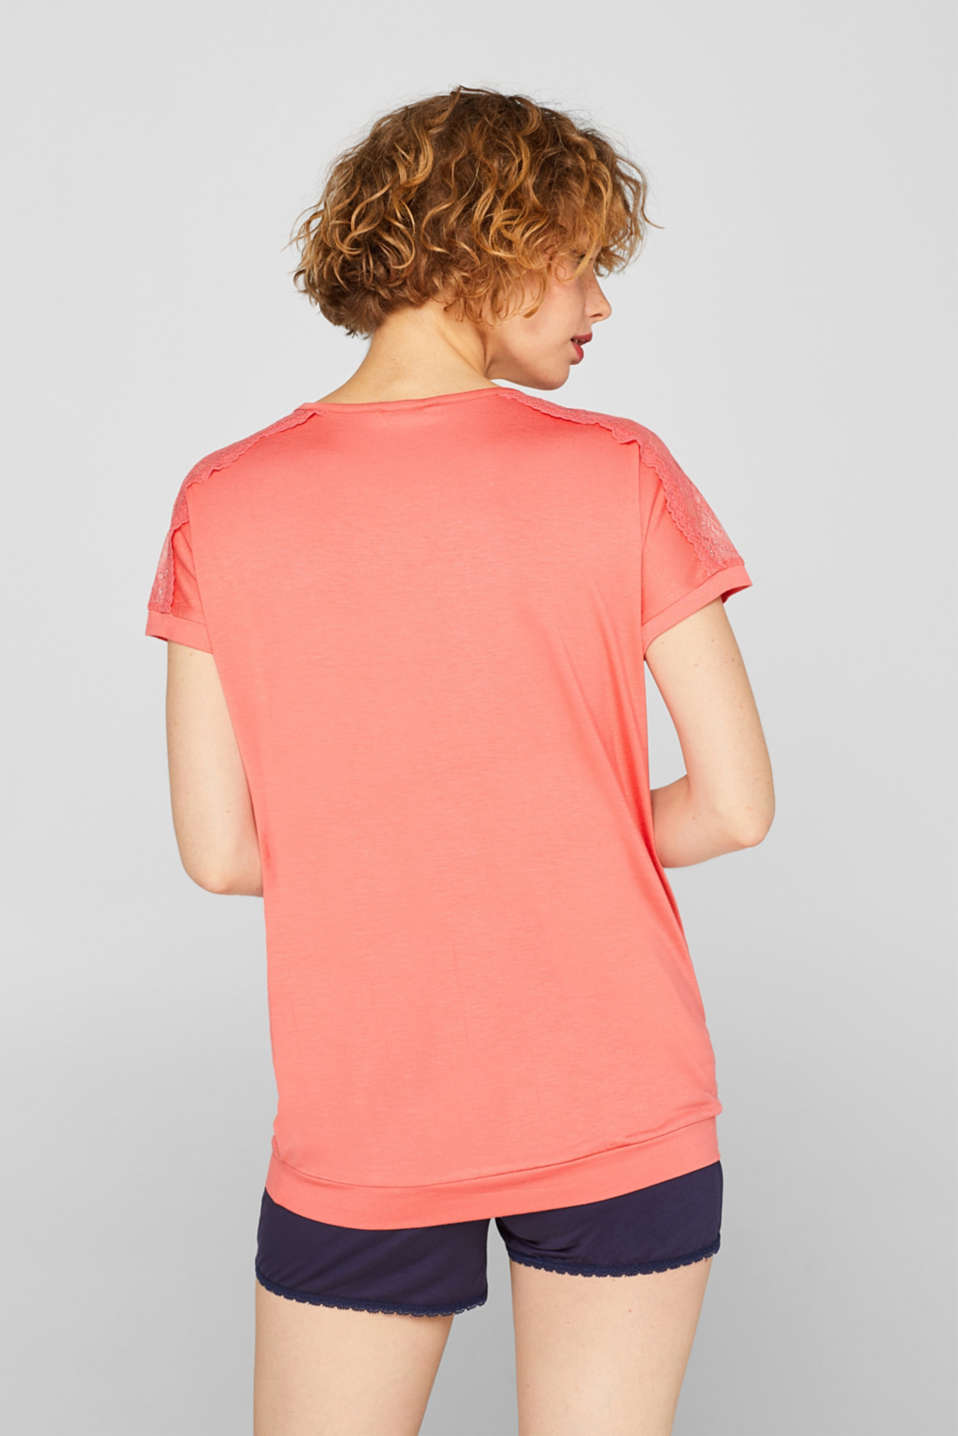 Lace-trimmed stretch T-shirt, CORAL, detail image number 2